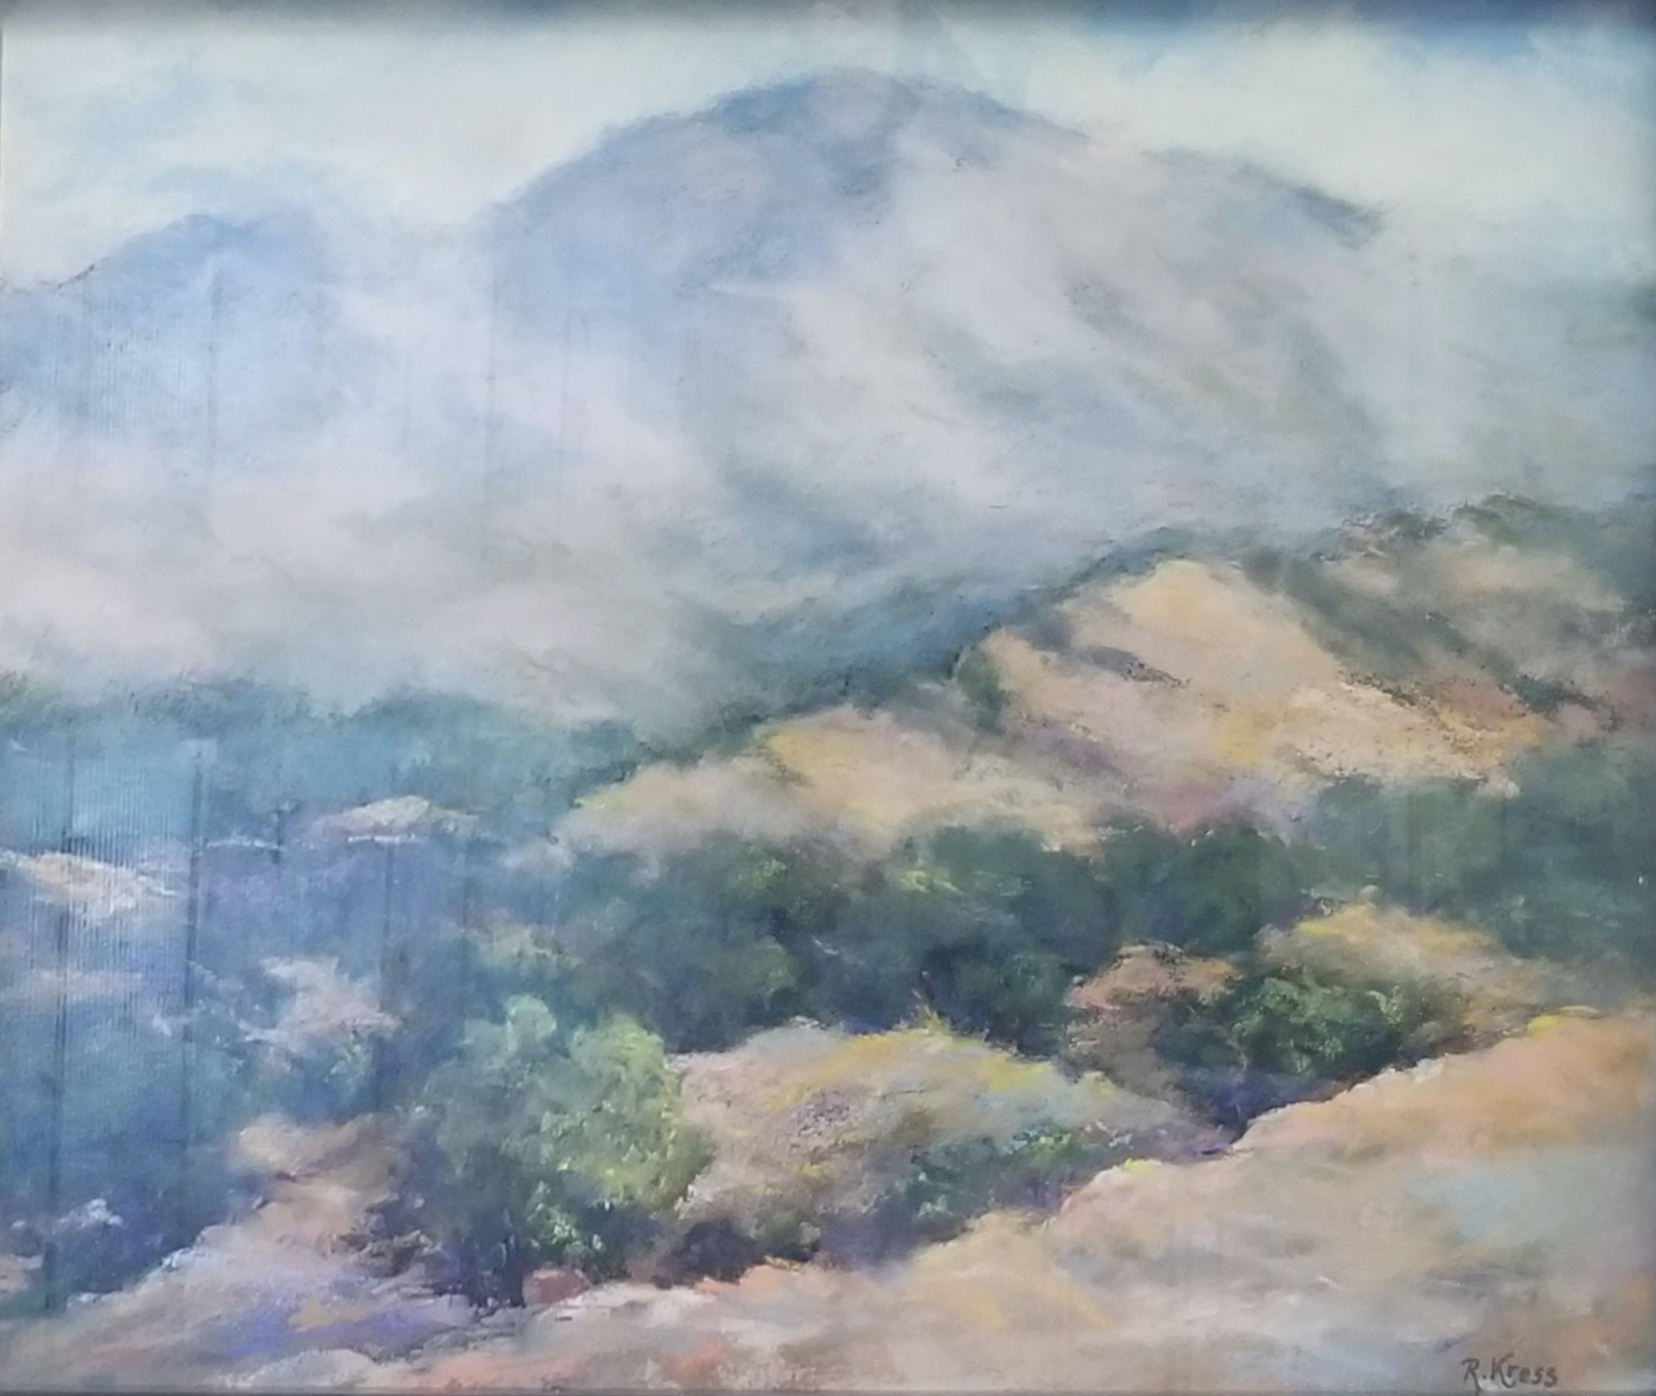 Morning Clouds over Mt. Diablo, Roswitha Kress, 16.5 x 19.5, pastel on board, $350